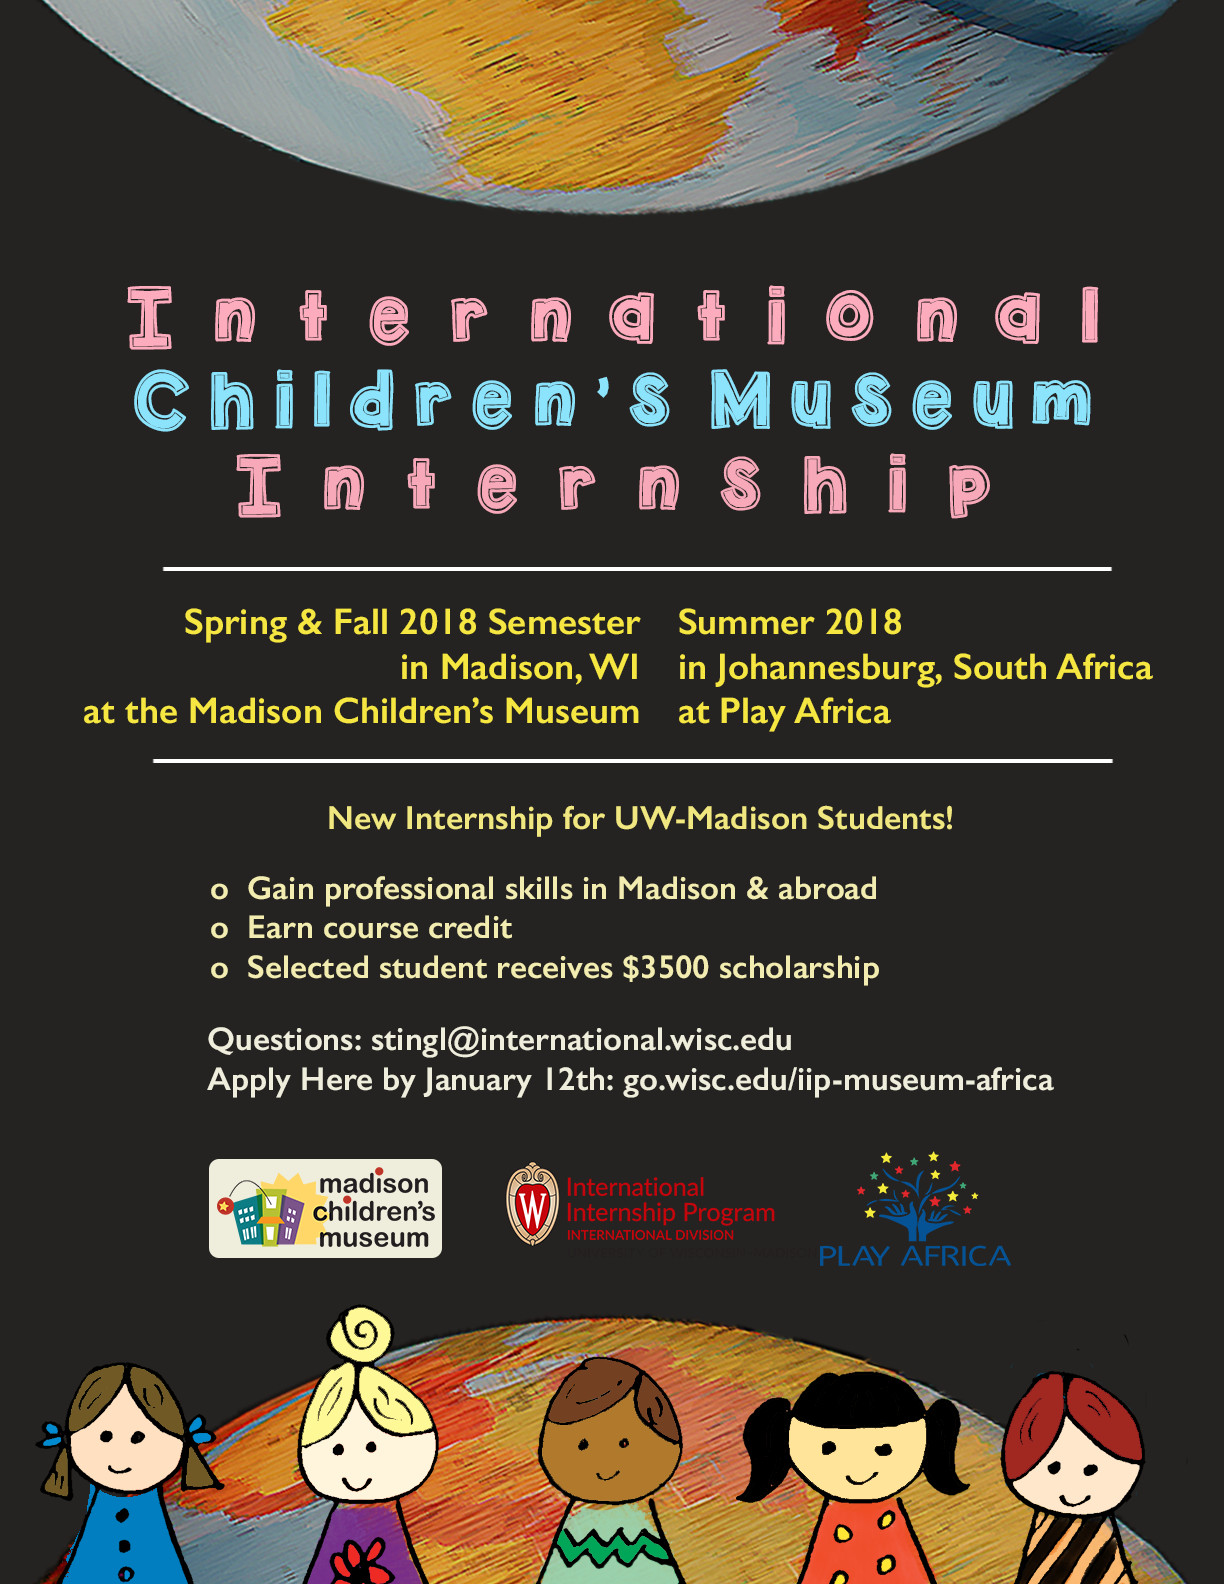 New International Children's Museum Internship in Madison